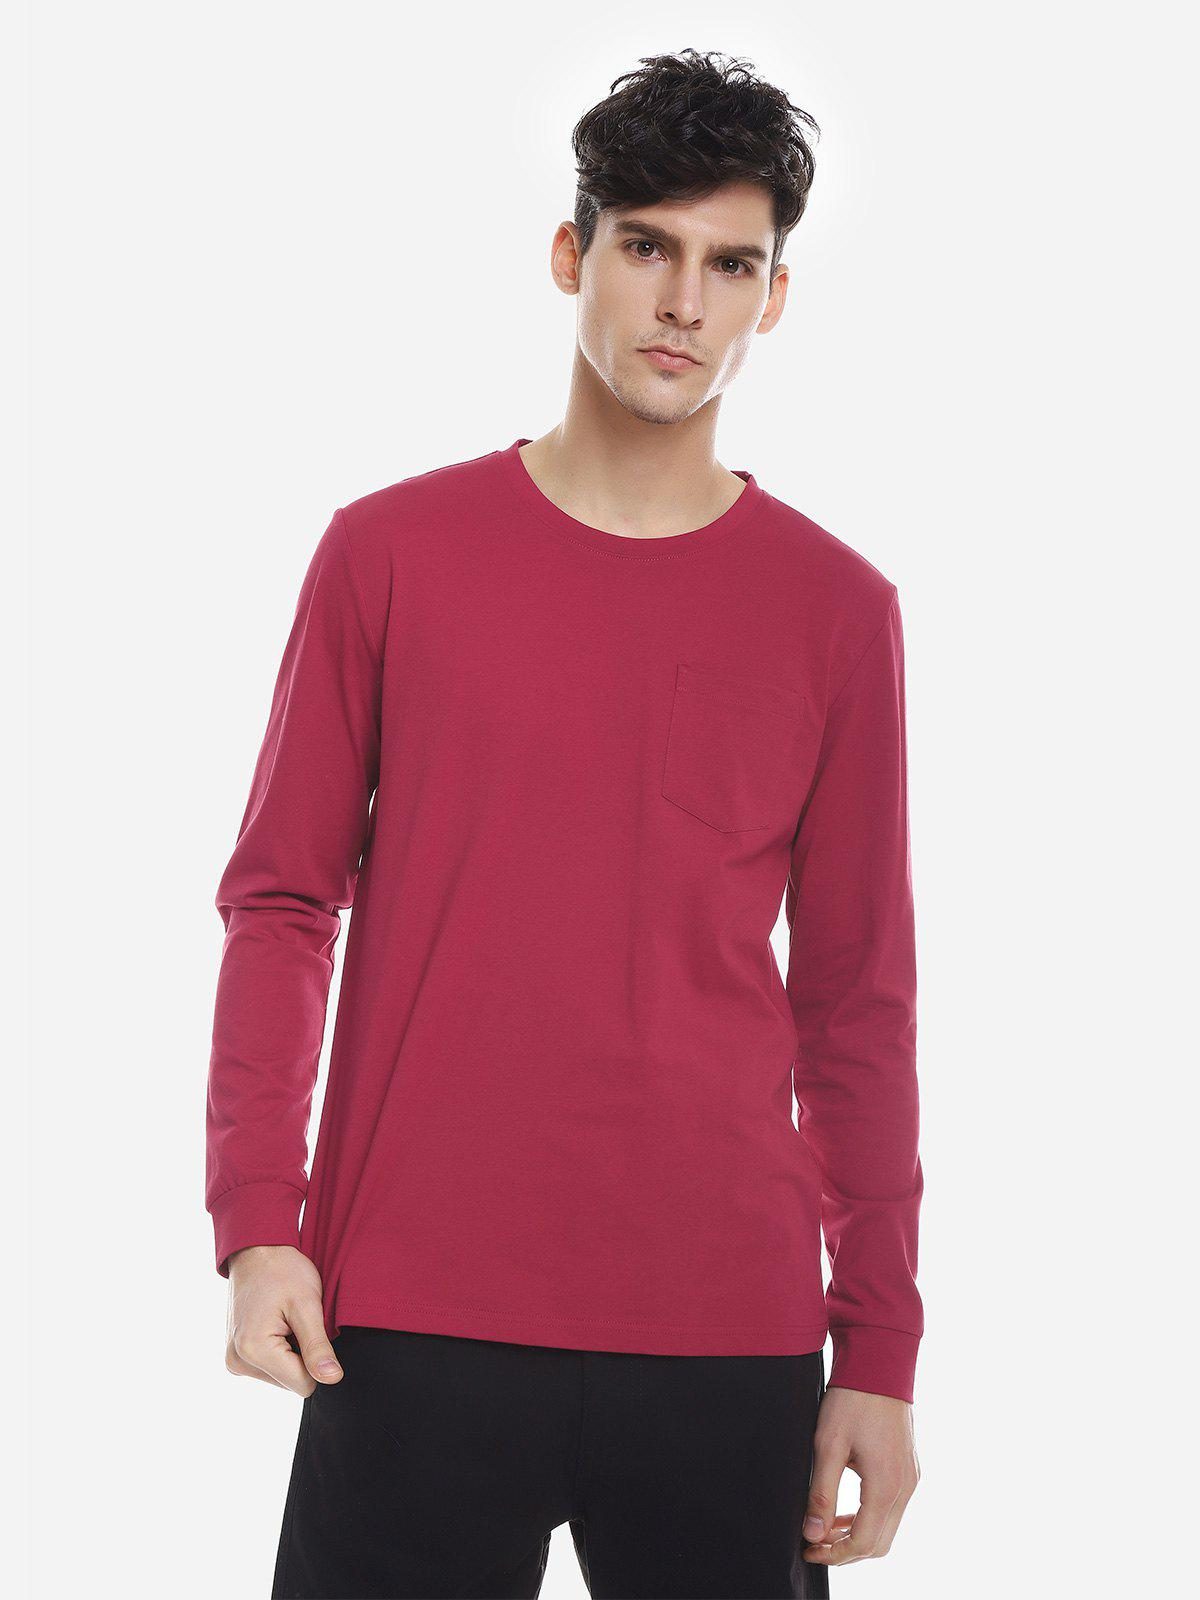 Trendy Crew Neck Long Sleeve T Shirt